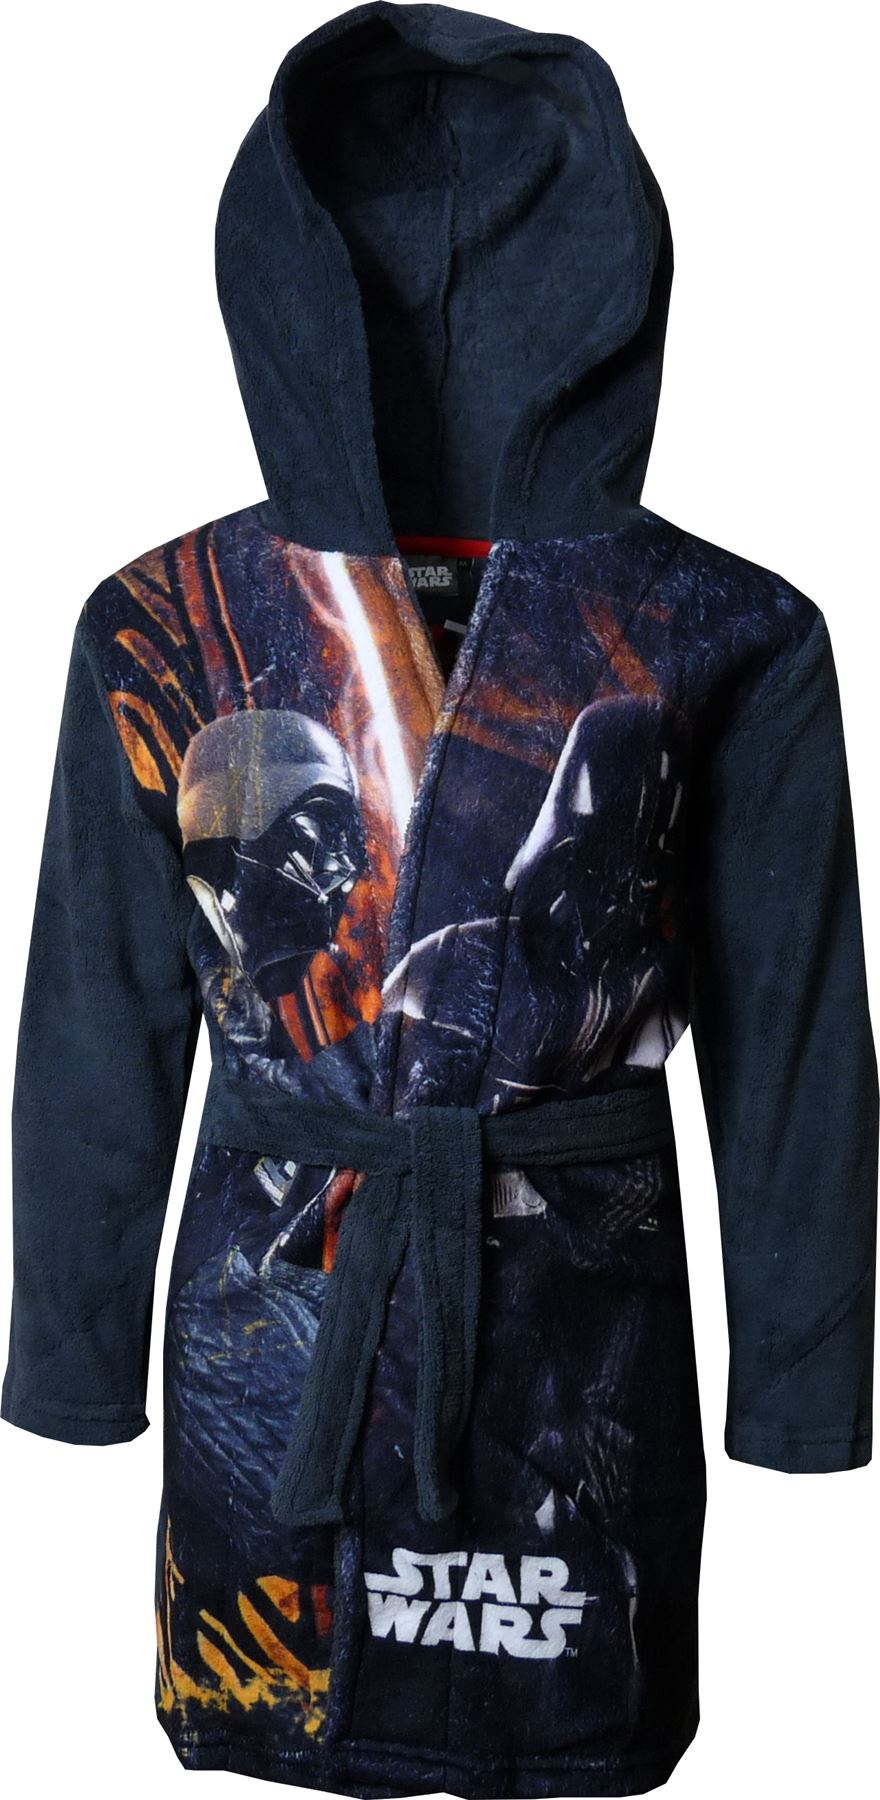 Shop for Clothes, Accessories & Bedding for Star Wars from the Kids department at Debenhams. You'll find the widest range of Kids products online and delivered to your door. Shop today!